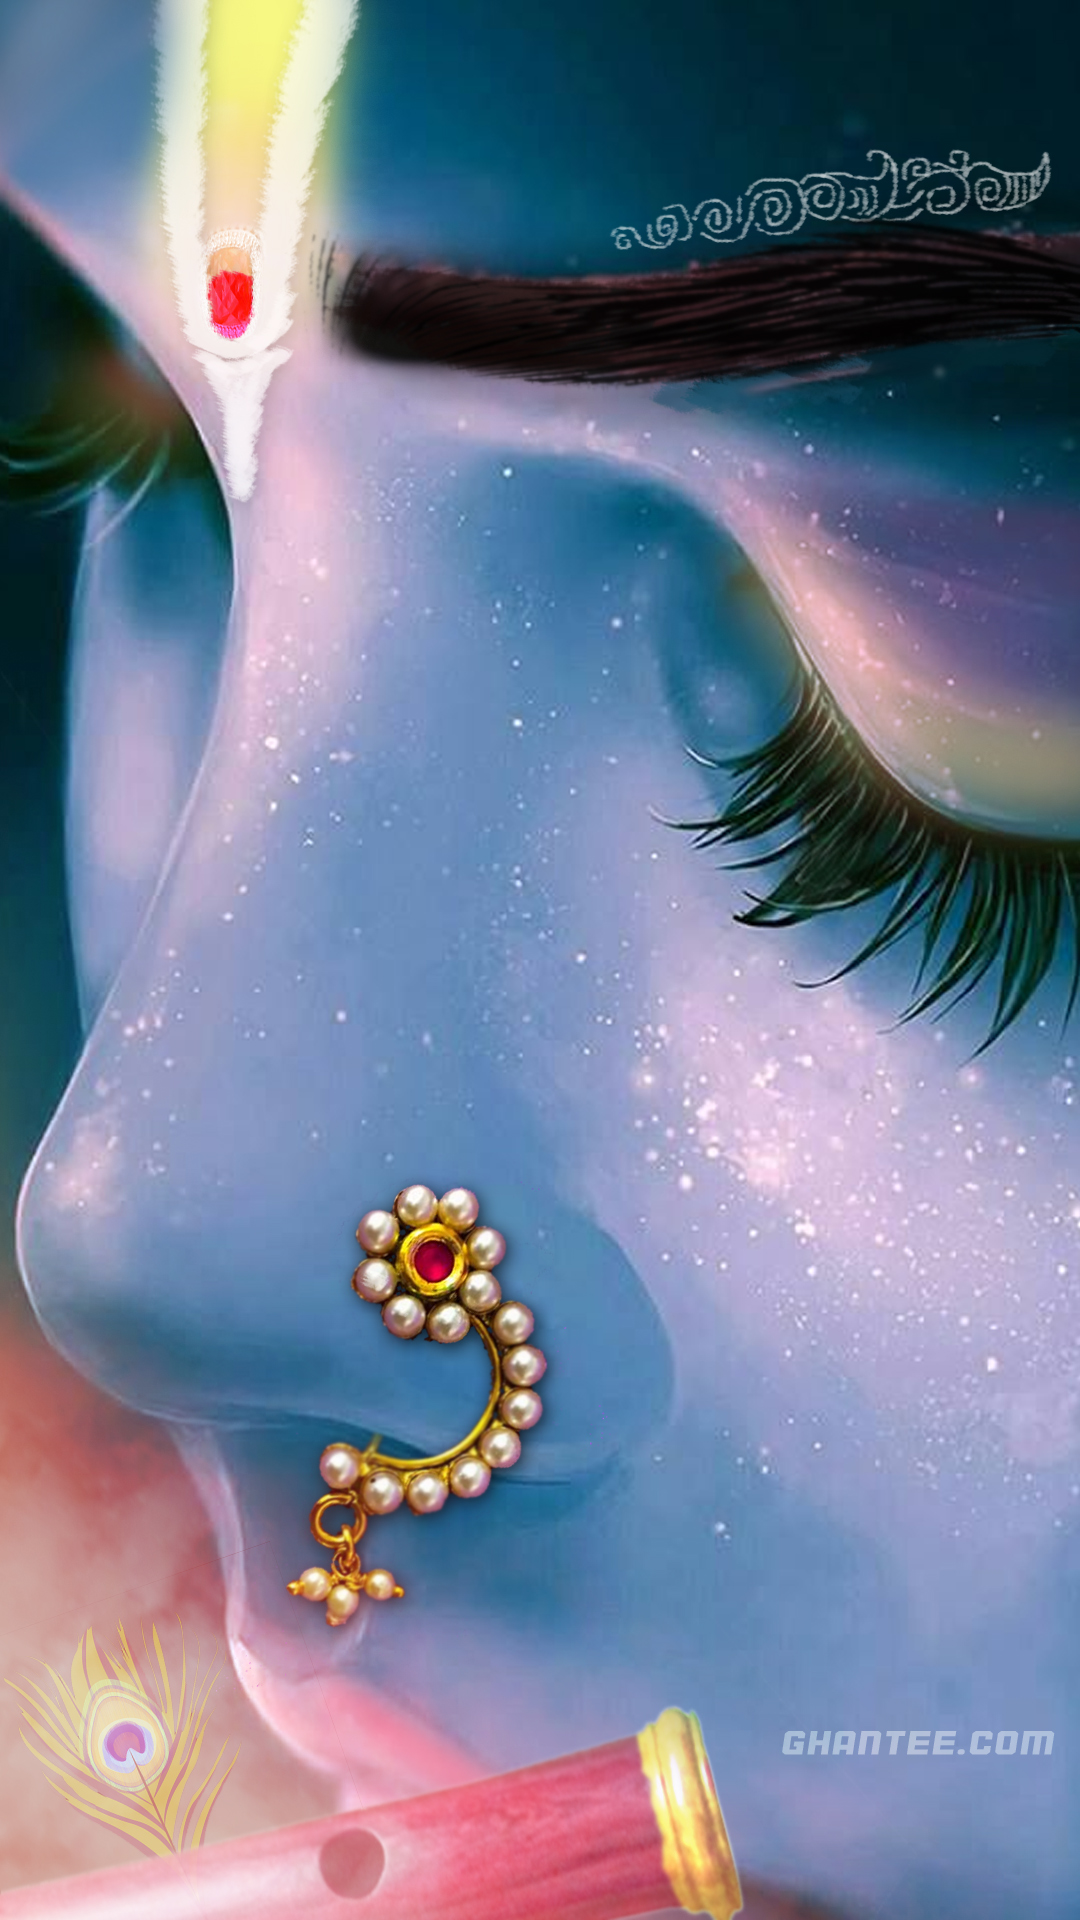 12 lord krishna images that are just glorious !!!